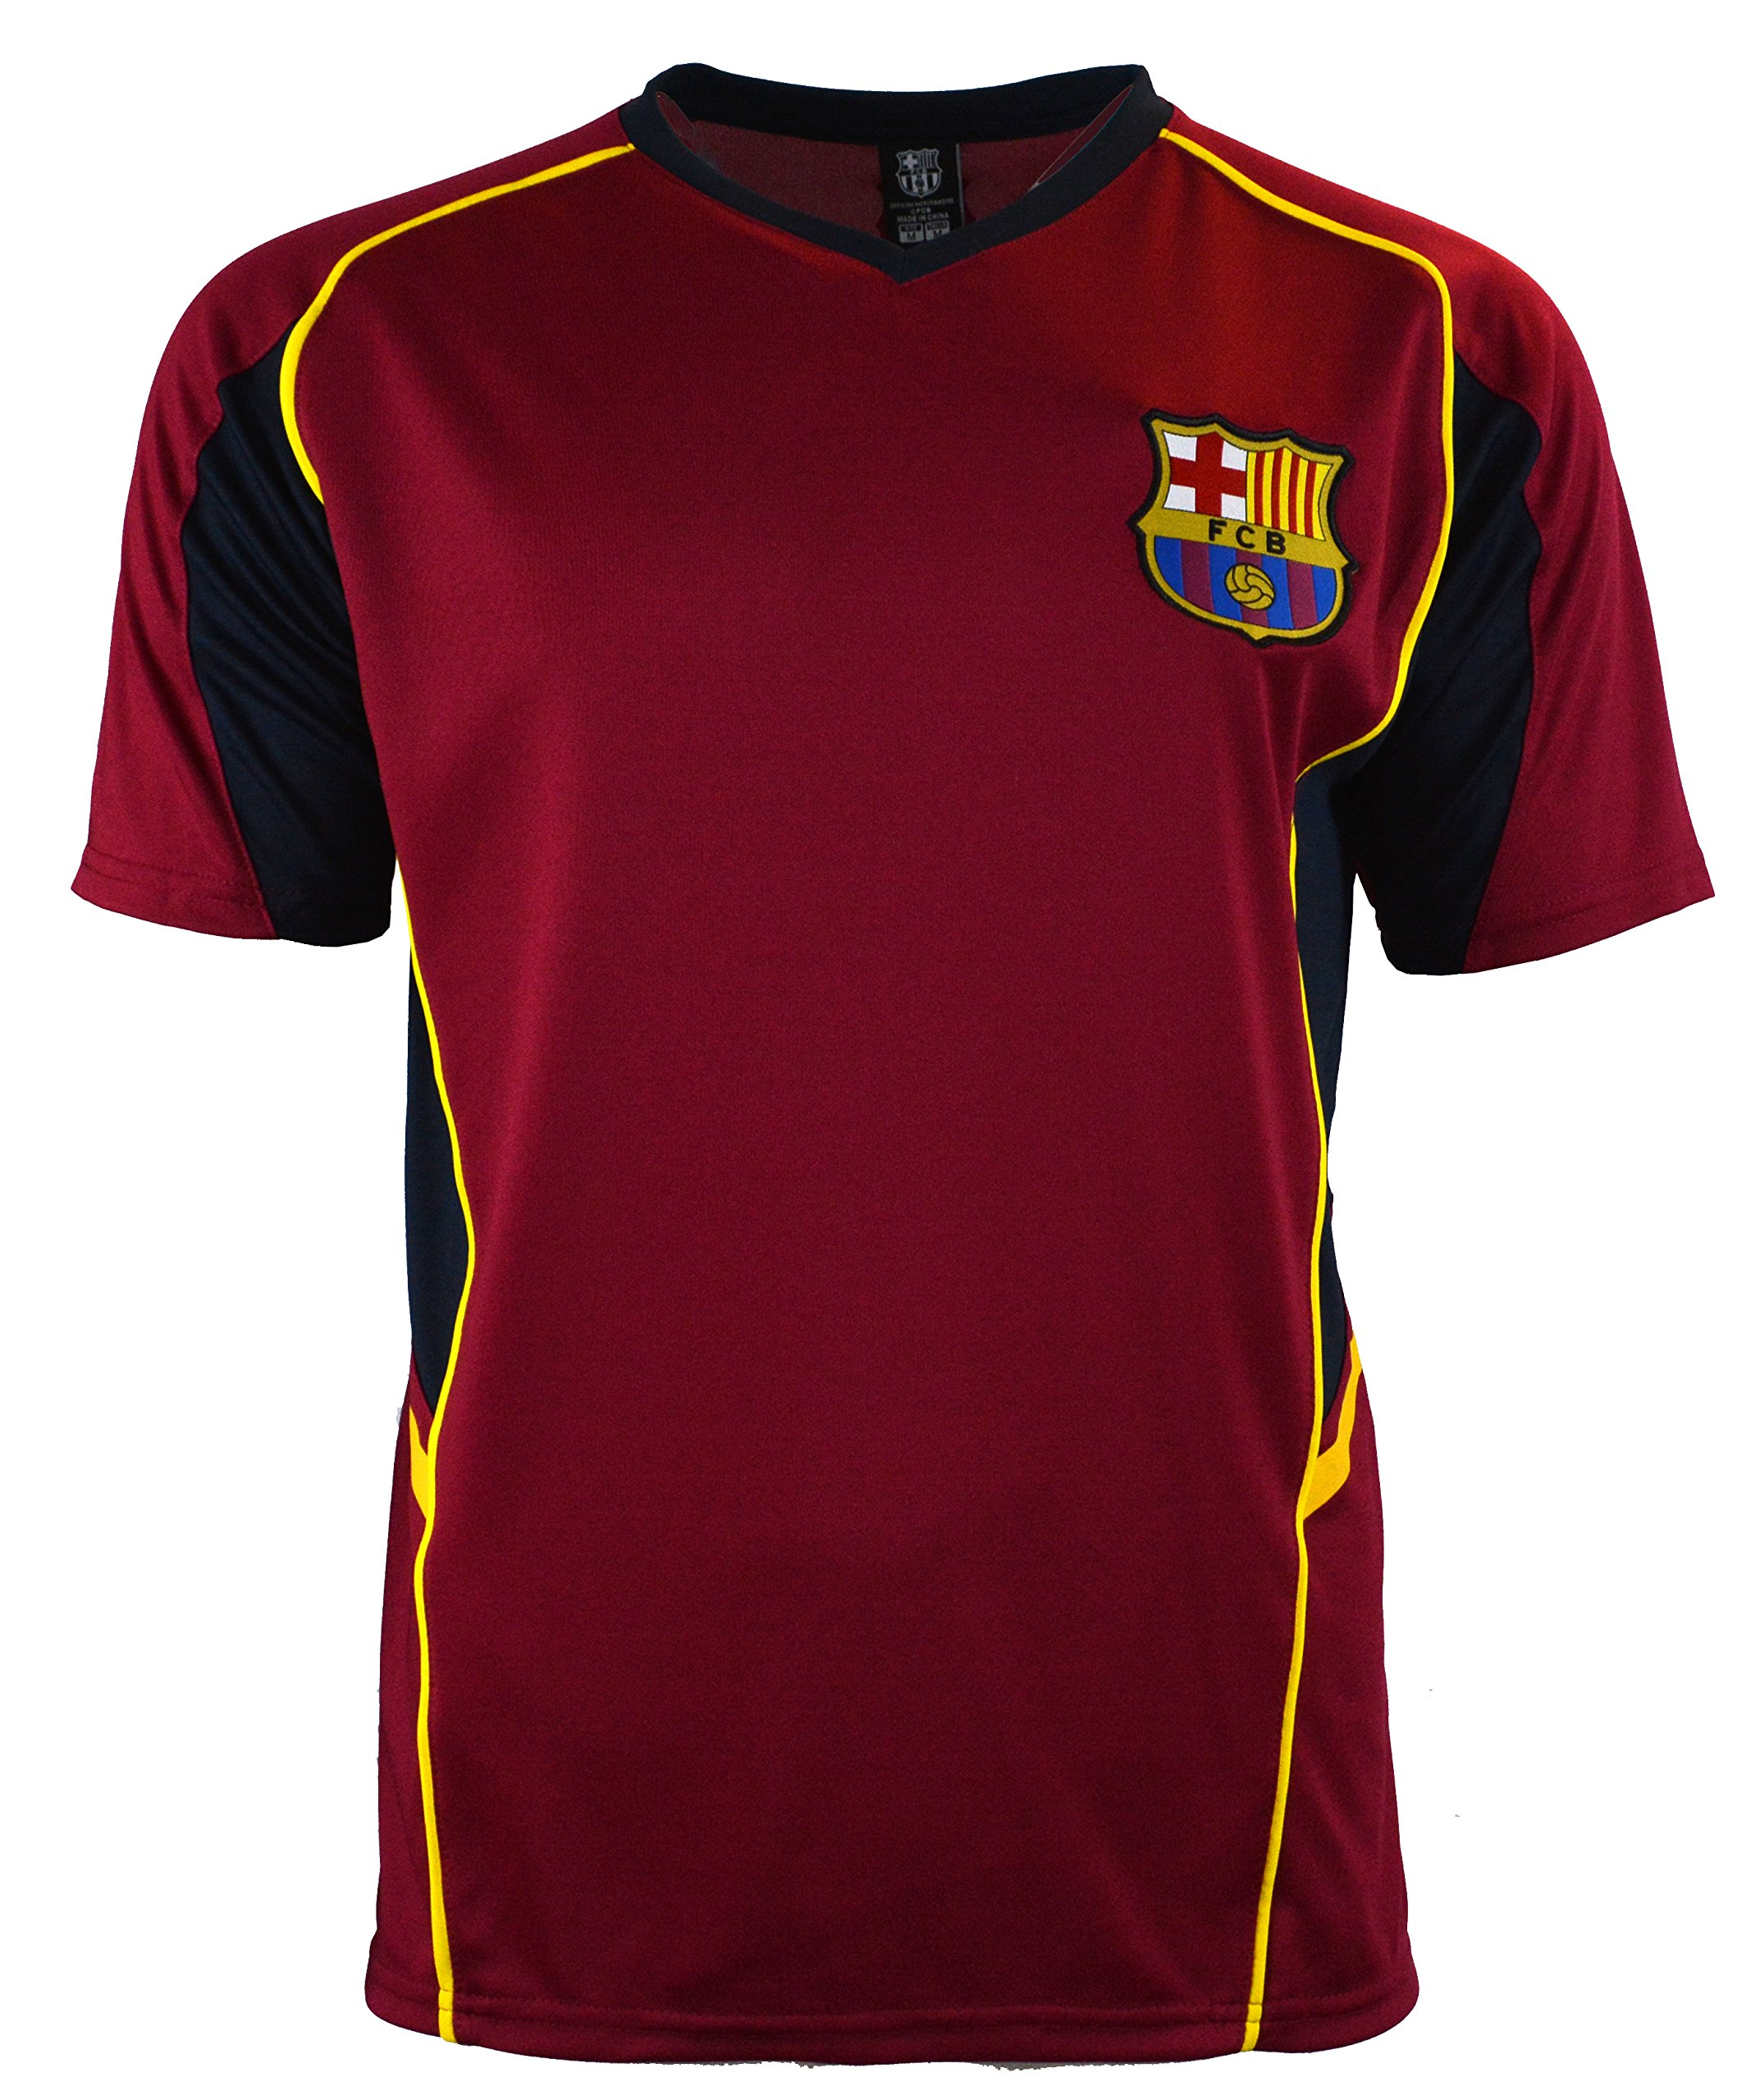 100% authentic c369f 85b7a Amazon.com: Fc Barcelona Adult Training Soccer Jersey ...